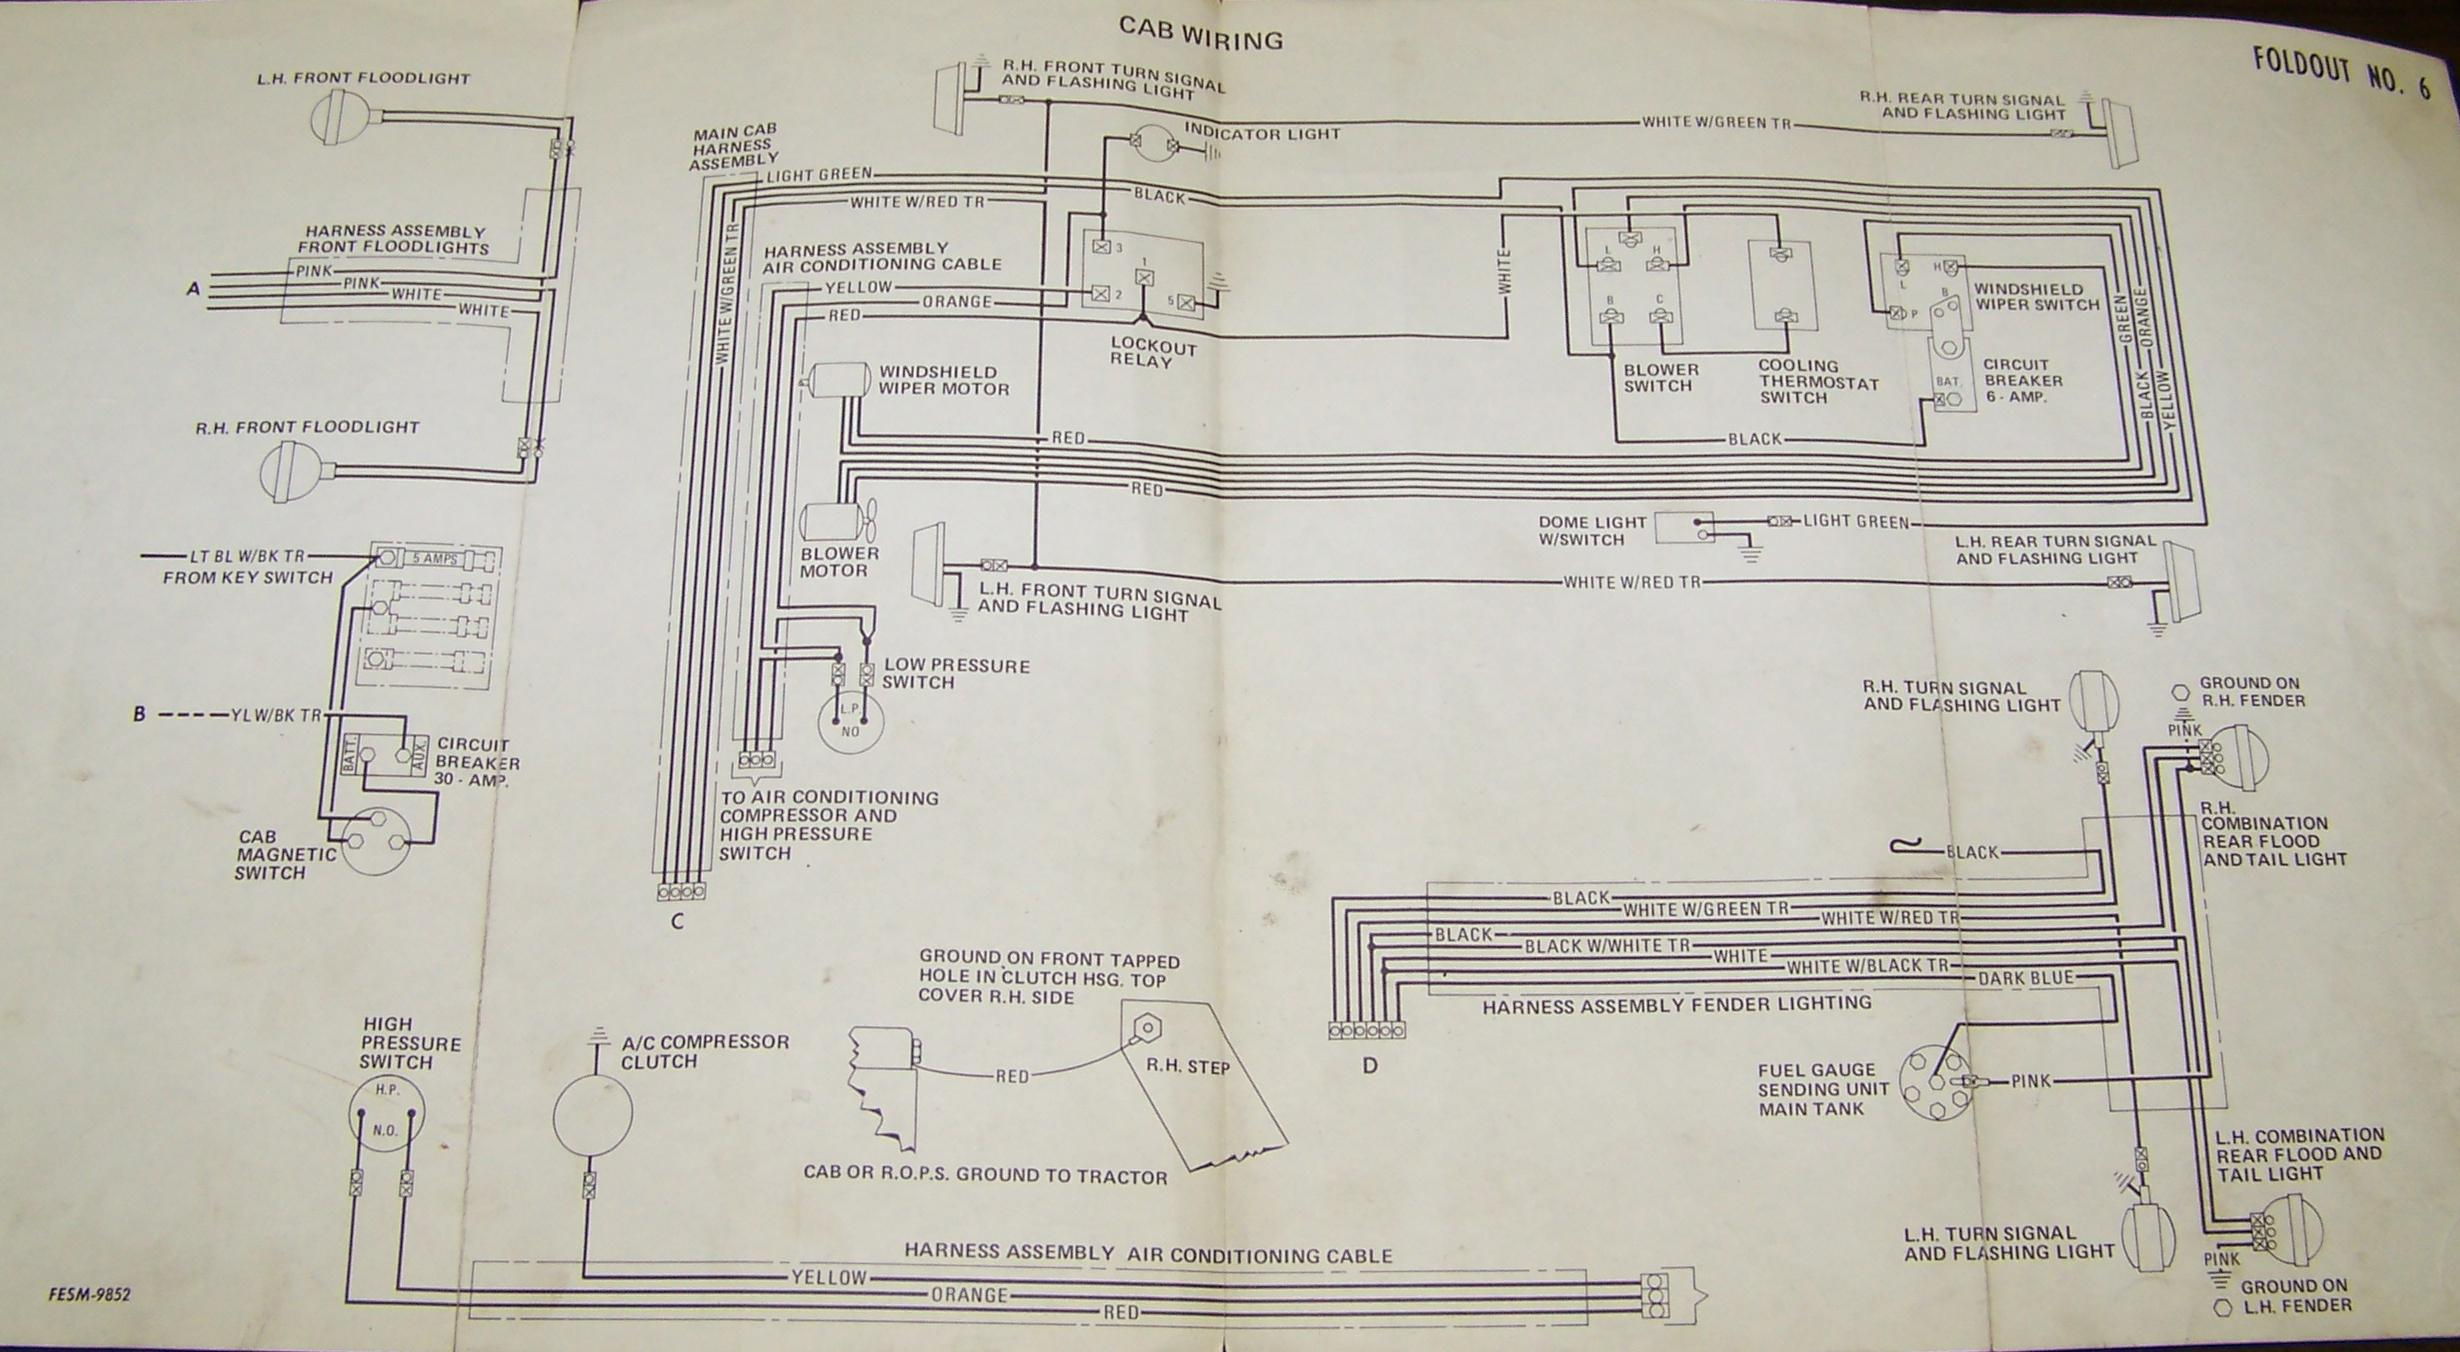 Ih 686 Wiring Diagram Schemes Wire Scout Carter Gruenewald Co Inc Farmall Tractor Electrical Rh Cngco Com 1942 H Power Window